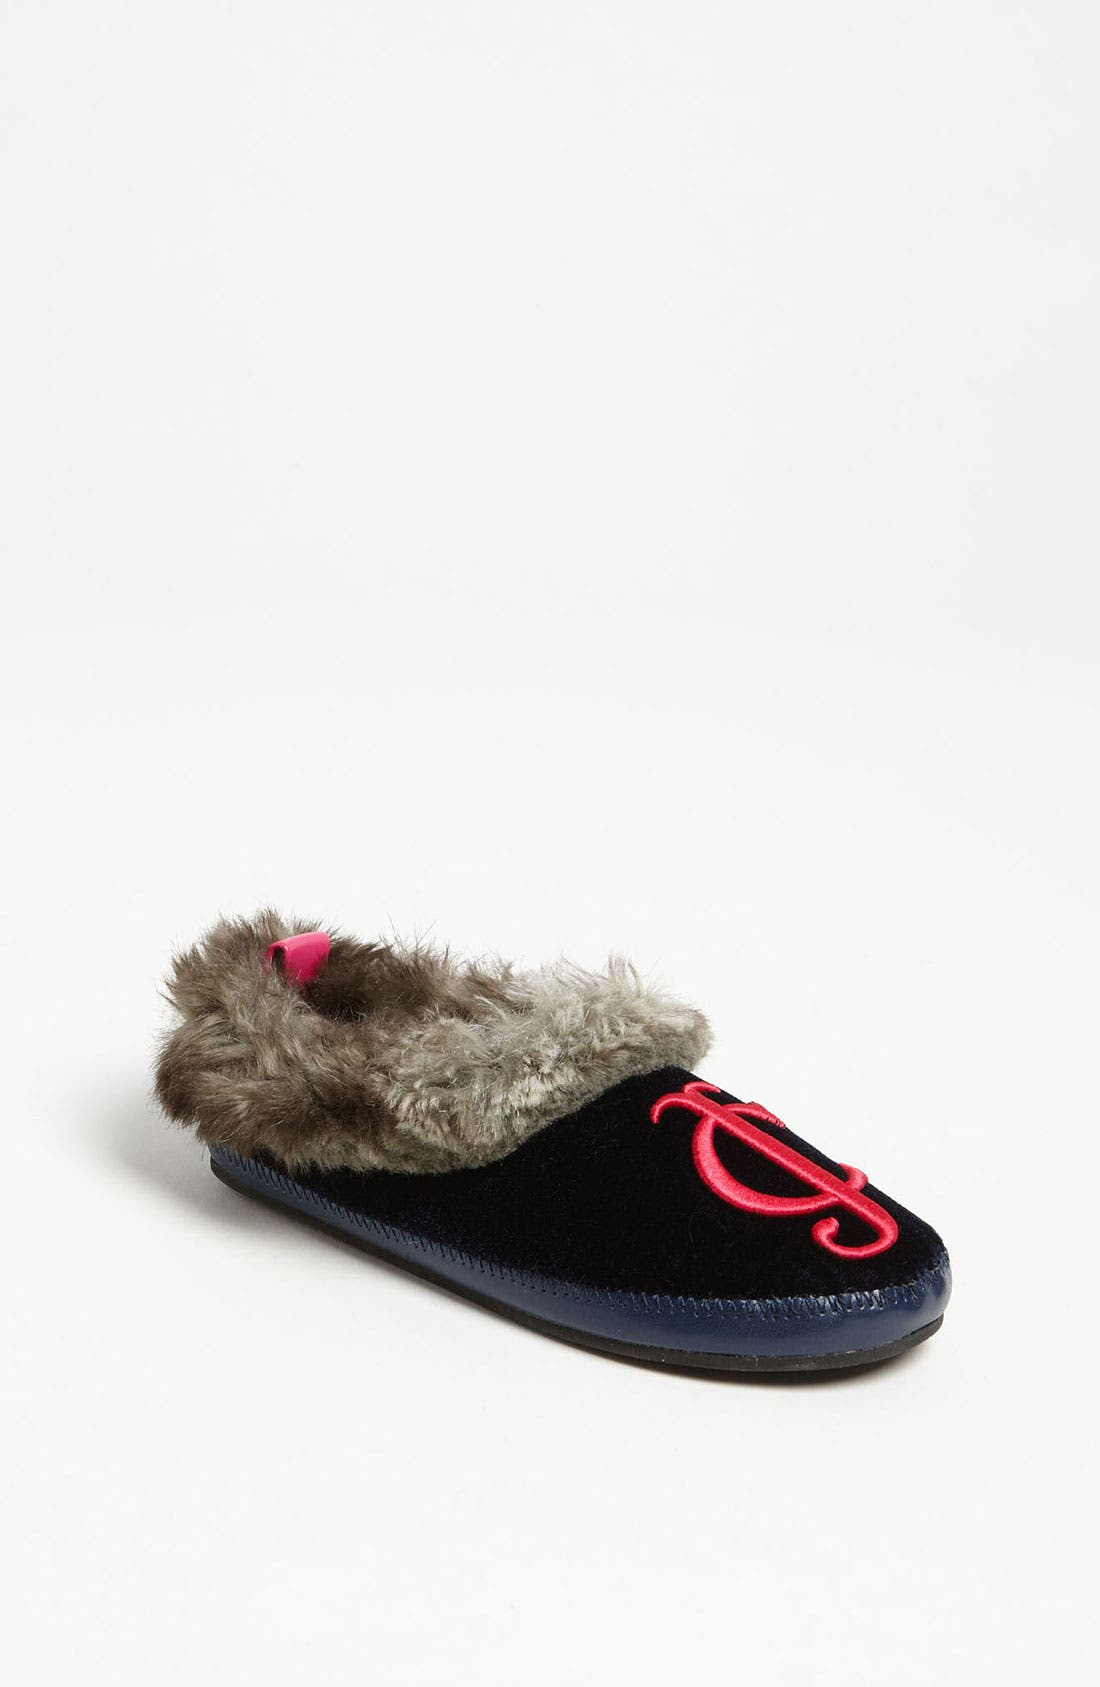 Main Image - Juicy Couture 'Kelly' Slipper (Toddler, Little Kid & Big Kid)